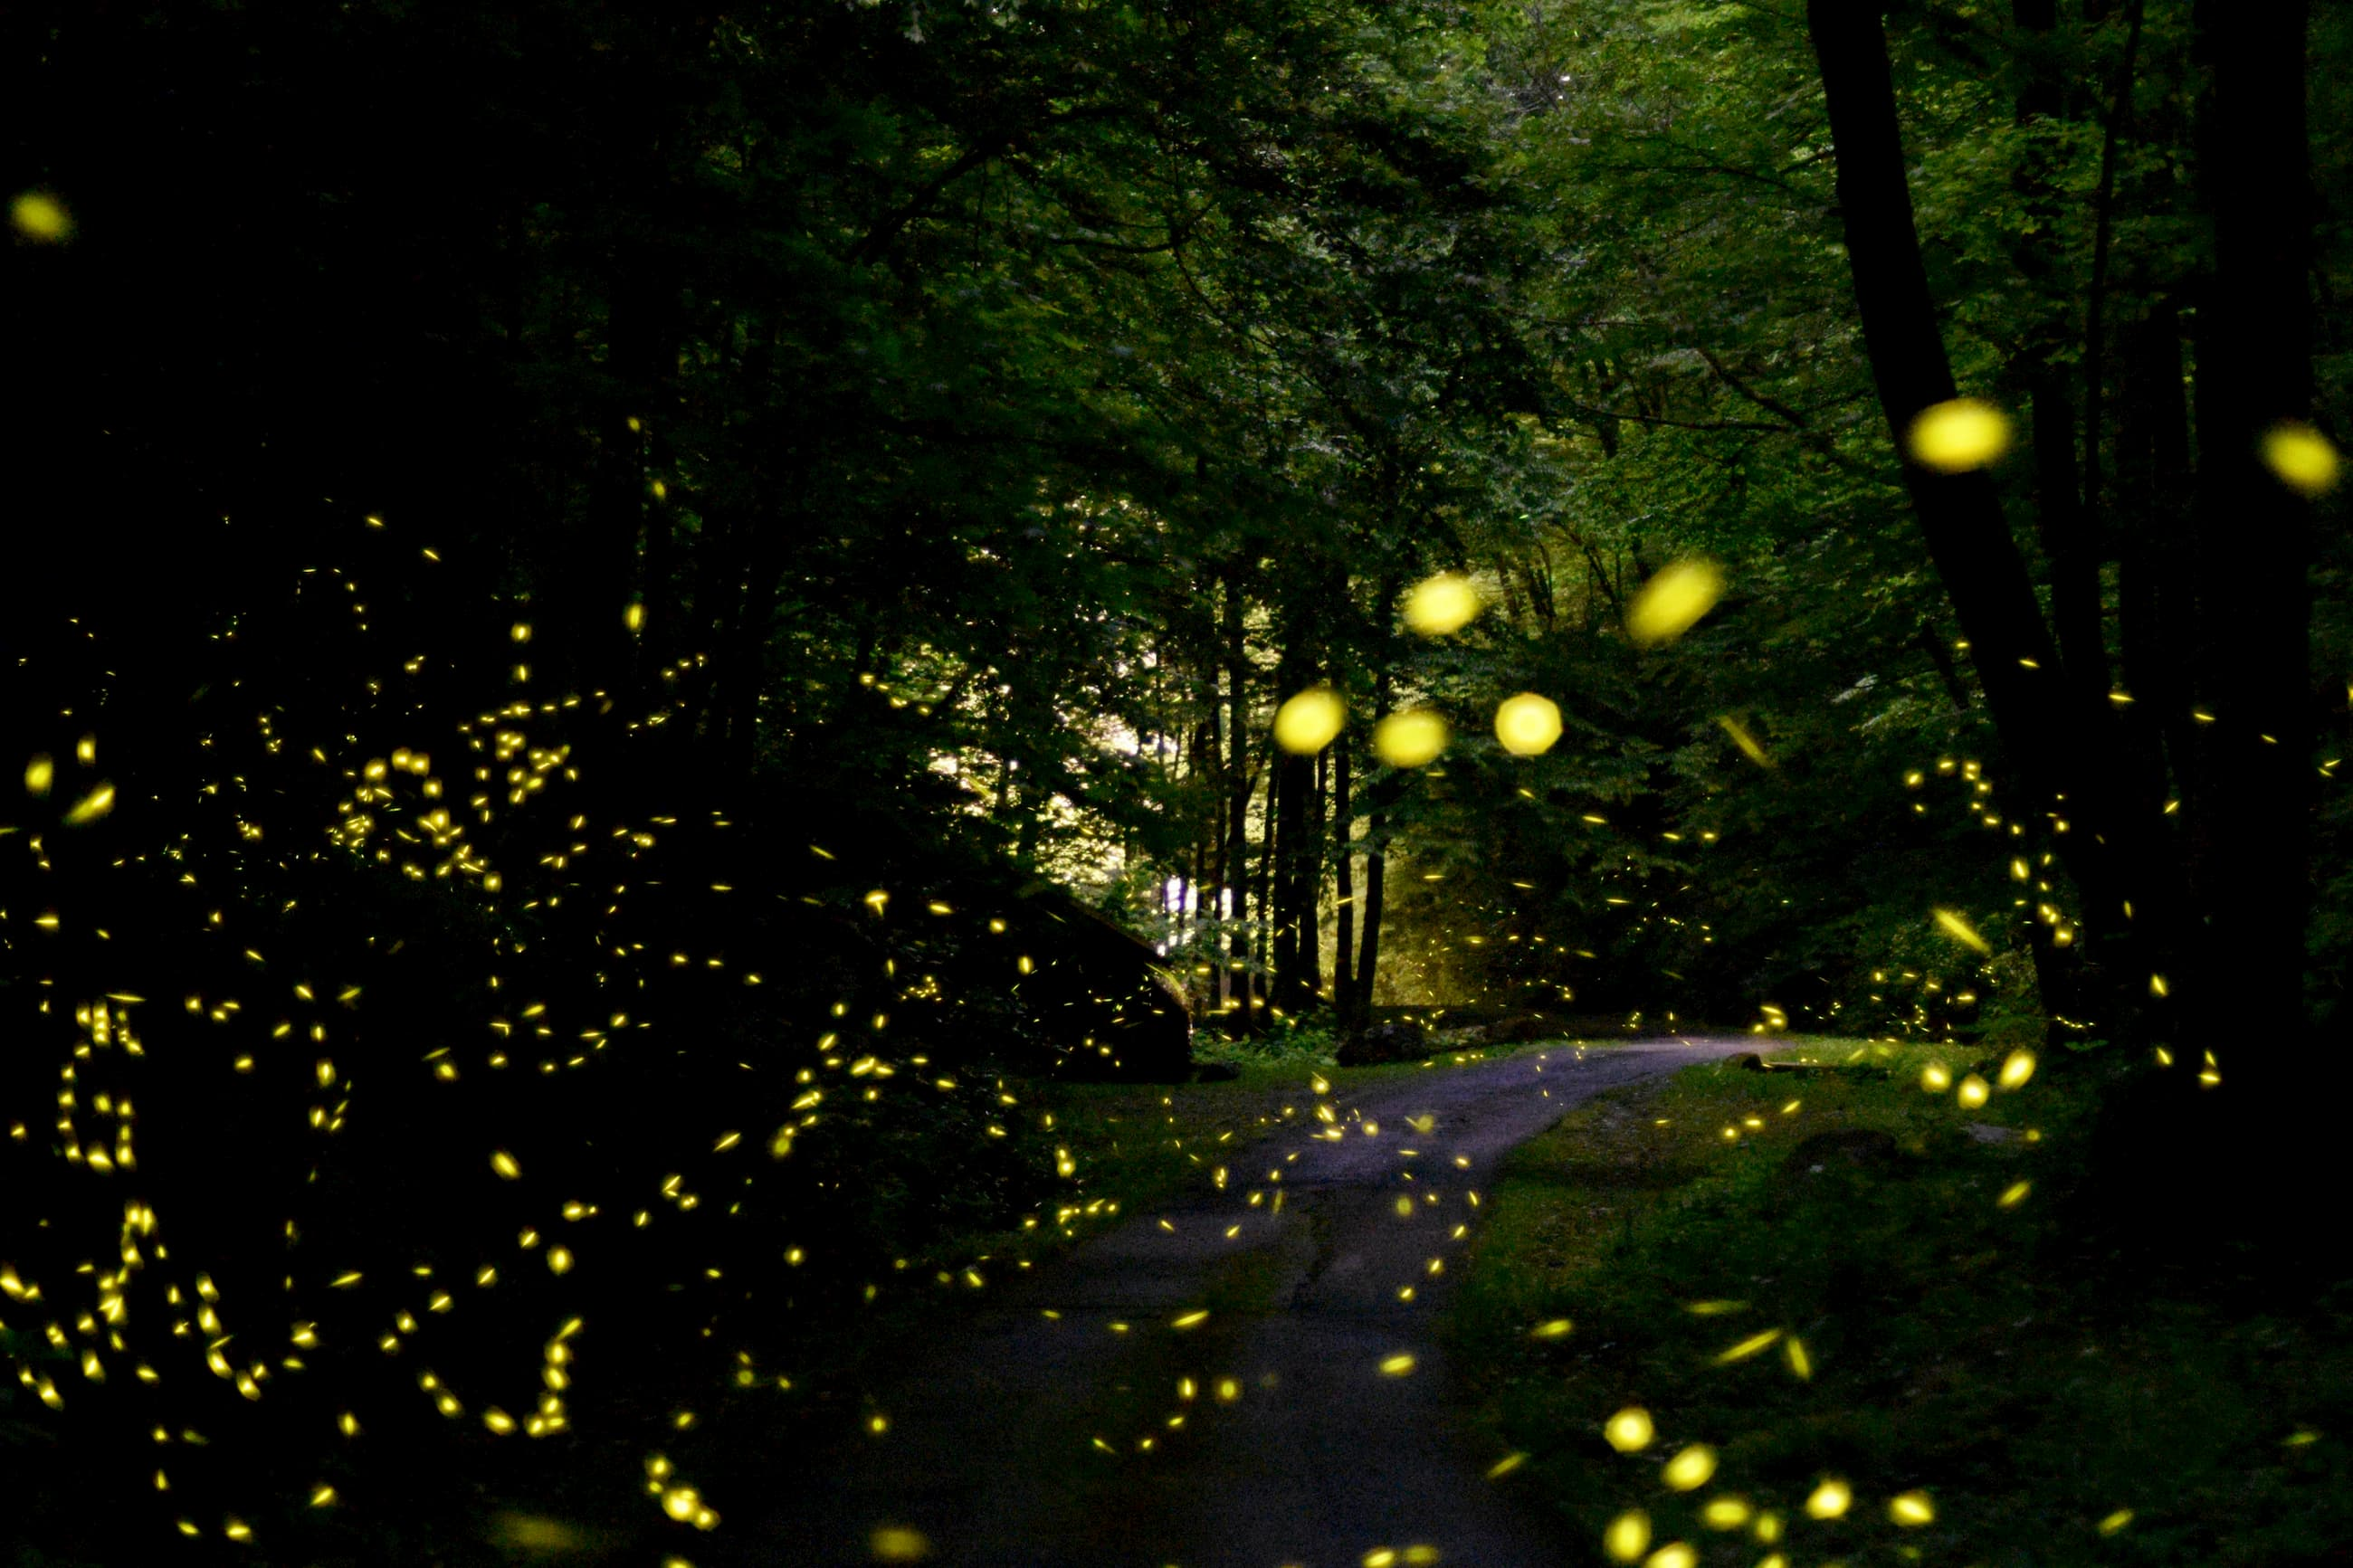 yellow illuminated dots swarm around as synchronous fireflies fly in thick, dark forest